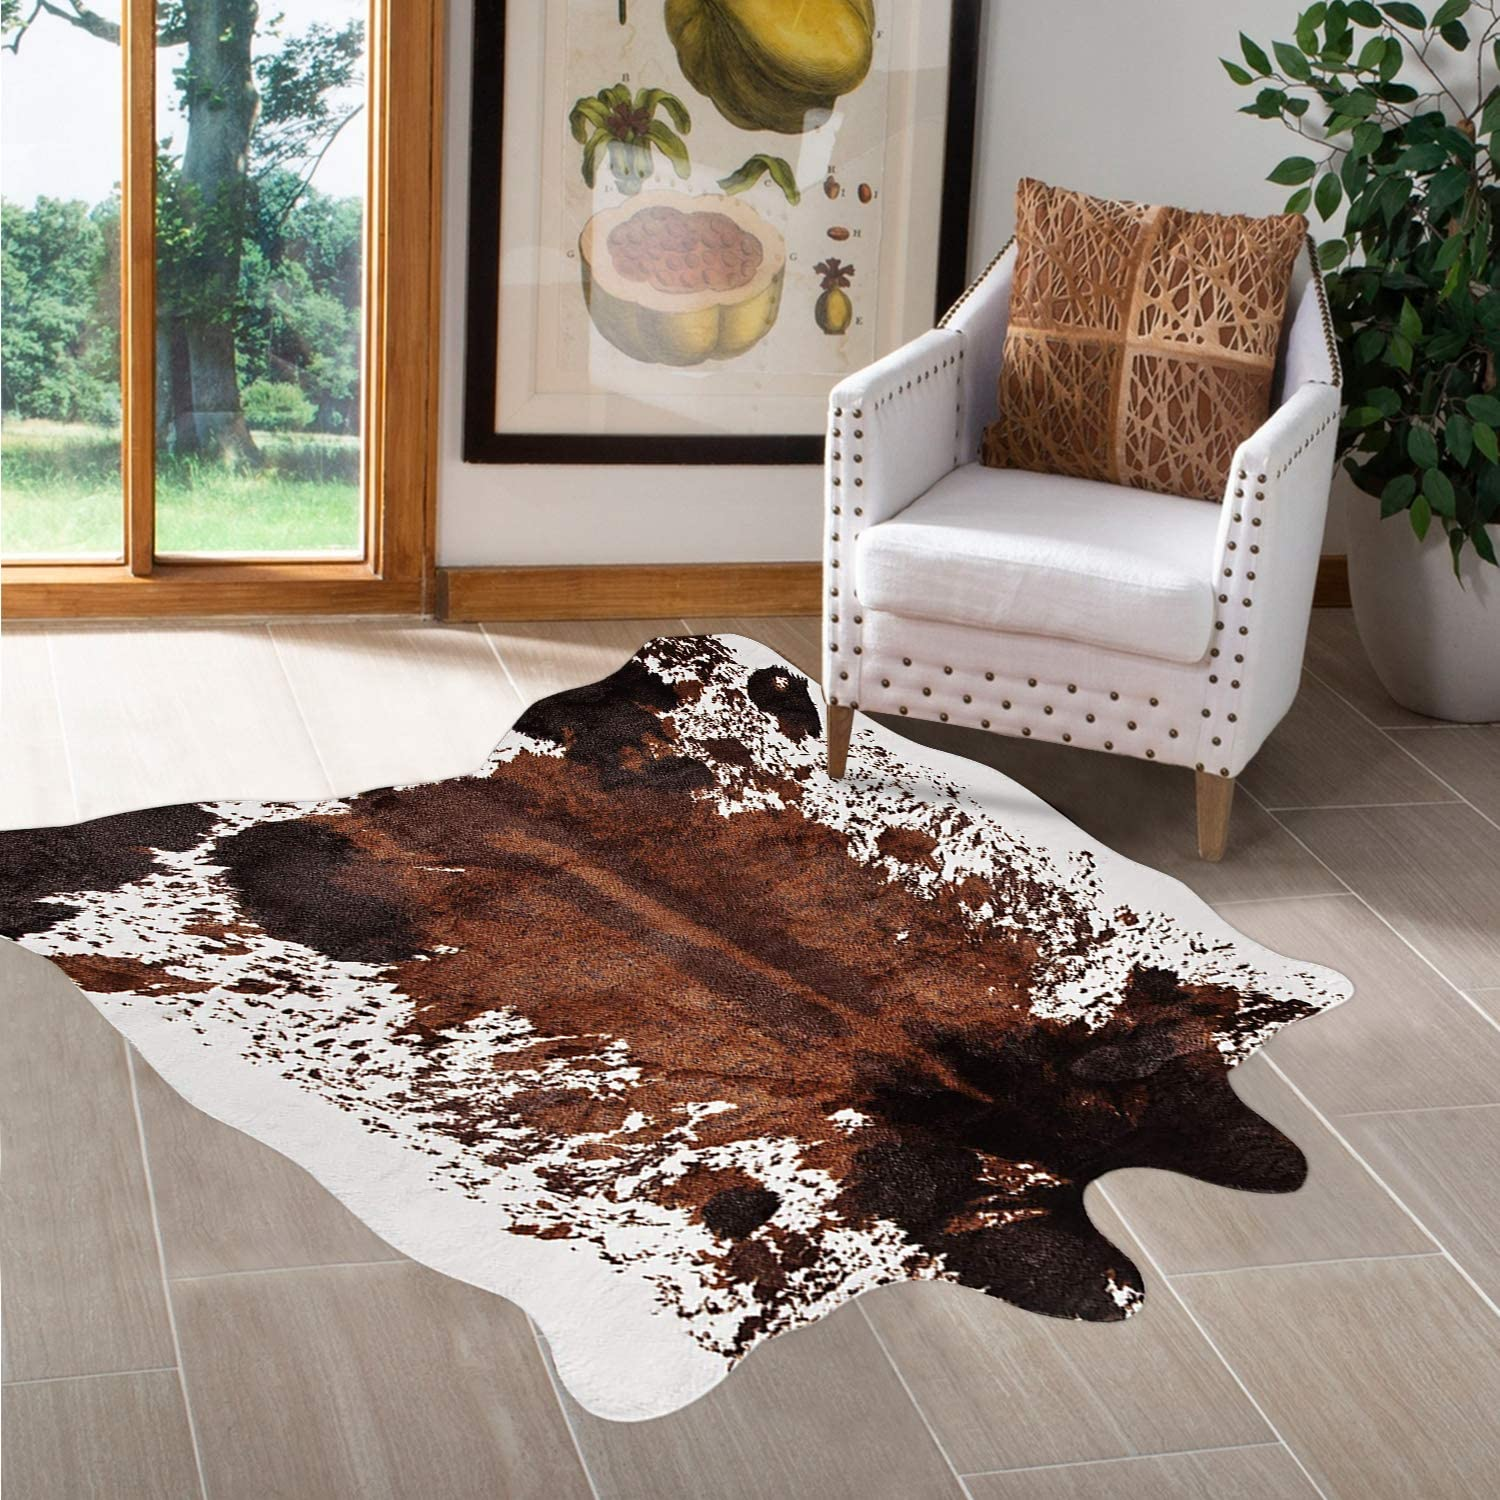 Purp Pie Large Faux Cowhide Rug (4.6ft x 6.6ft) Tricolor Cow Print Area Rugs for Living Room Bedroom, Cruelty-Free Animal Skin Hide Carpet for Home Office Western Cowboy Boho Decor(Brown)